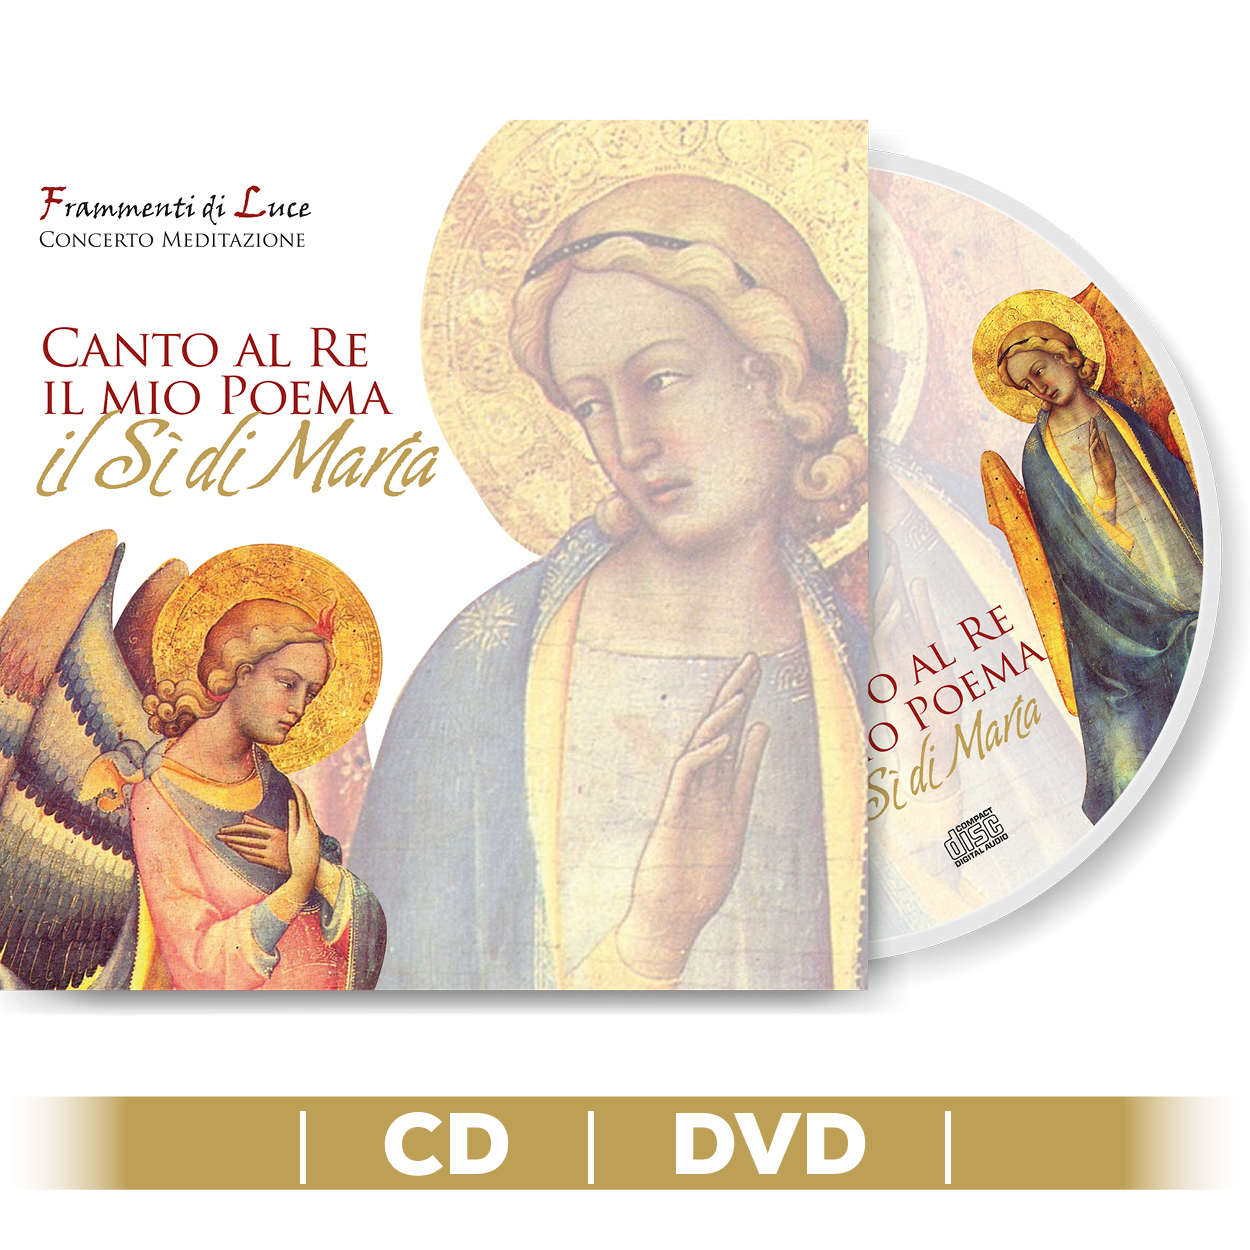 DVD - Canto al re il mio poema